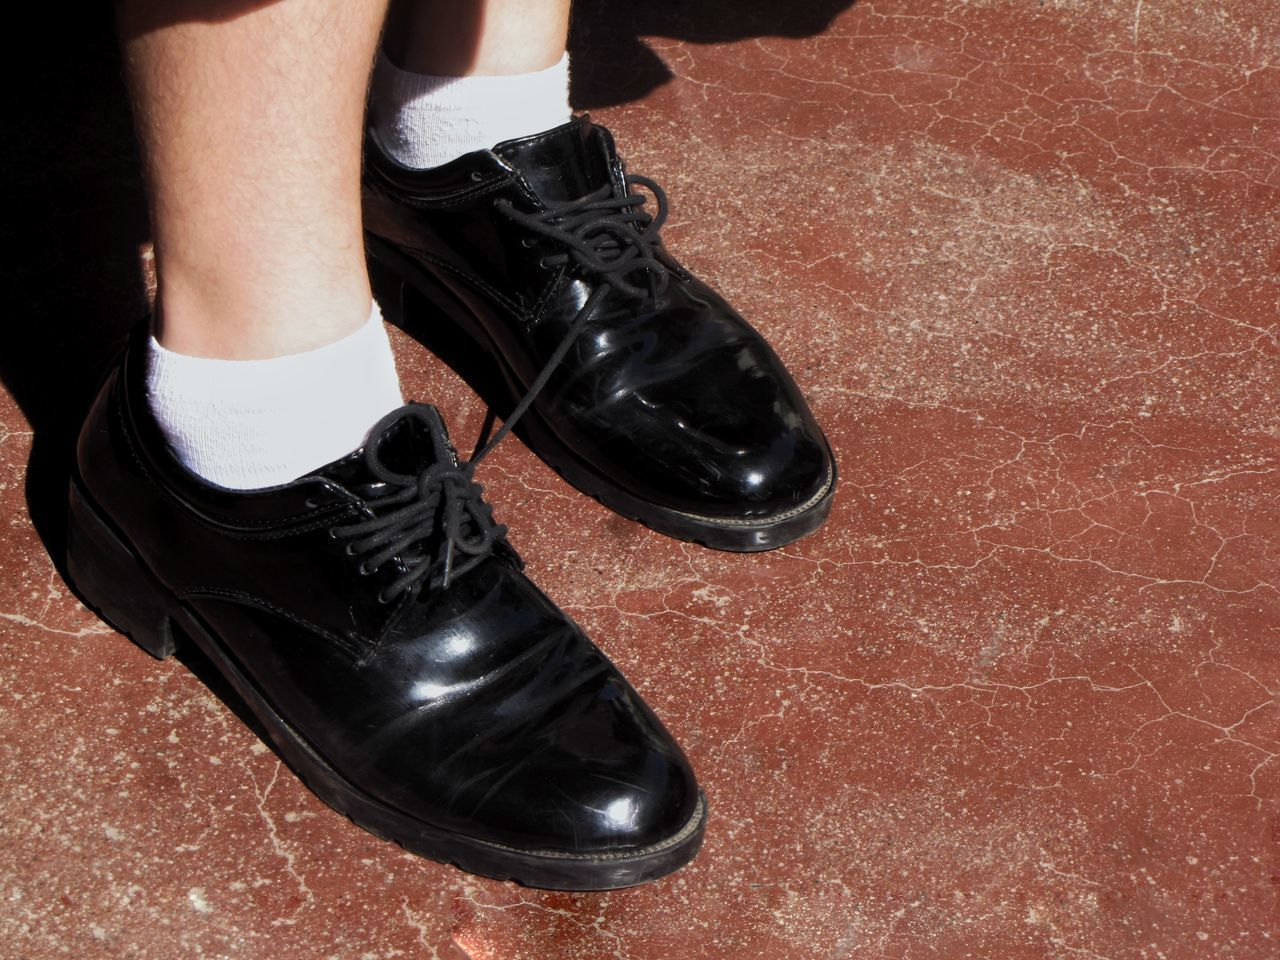 Lieblingsteil black Lovely Shoes. Leather Shoe Fashion low section people close-up